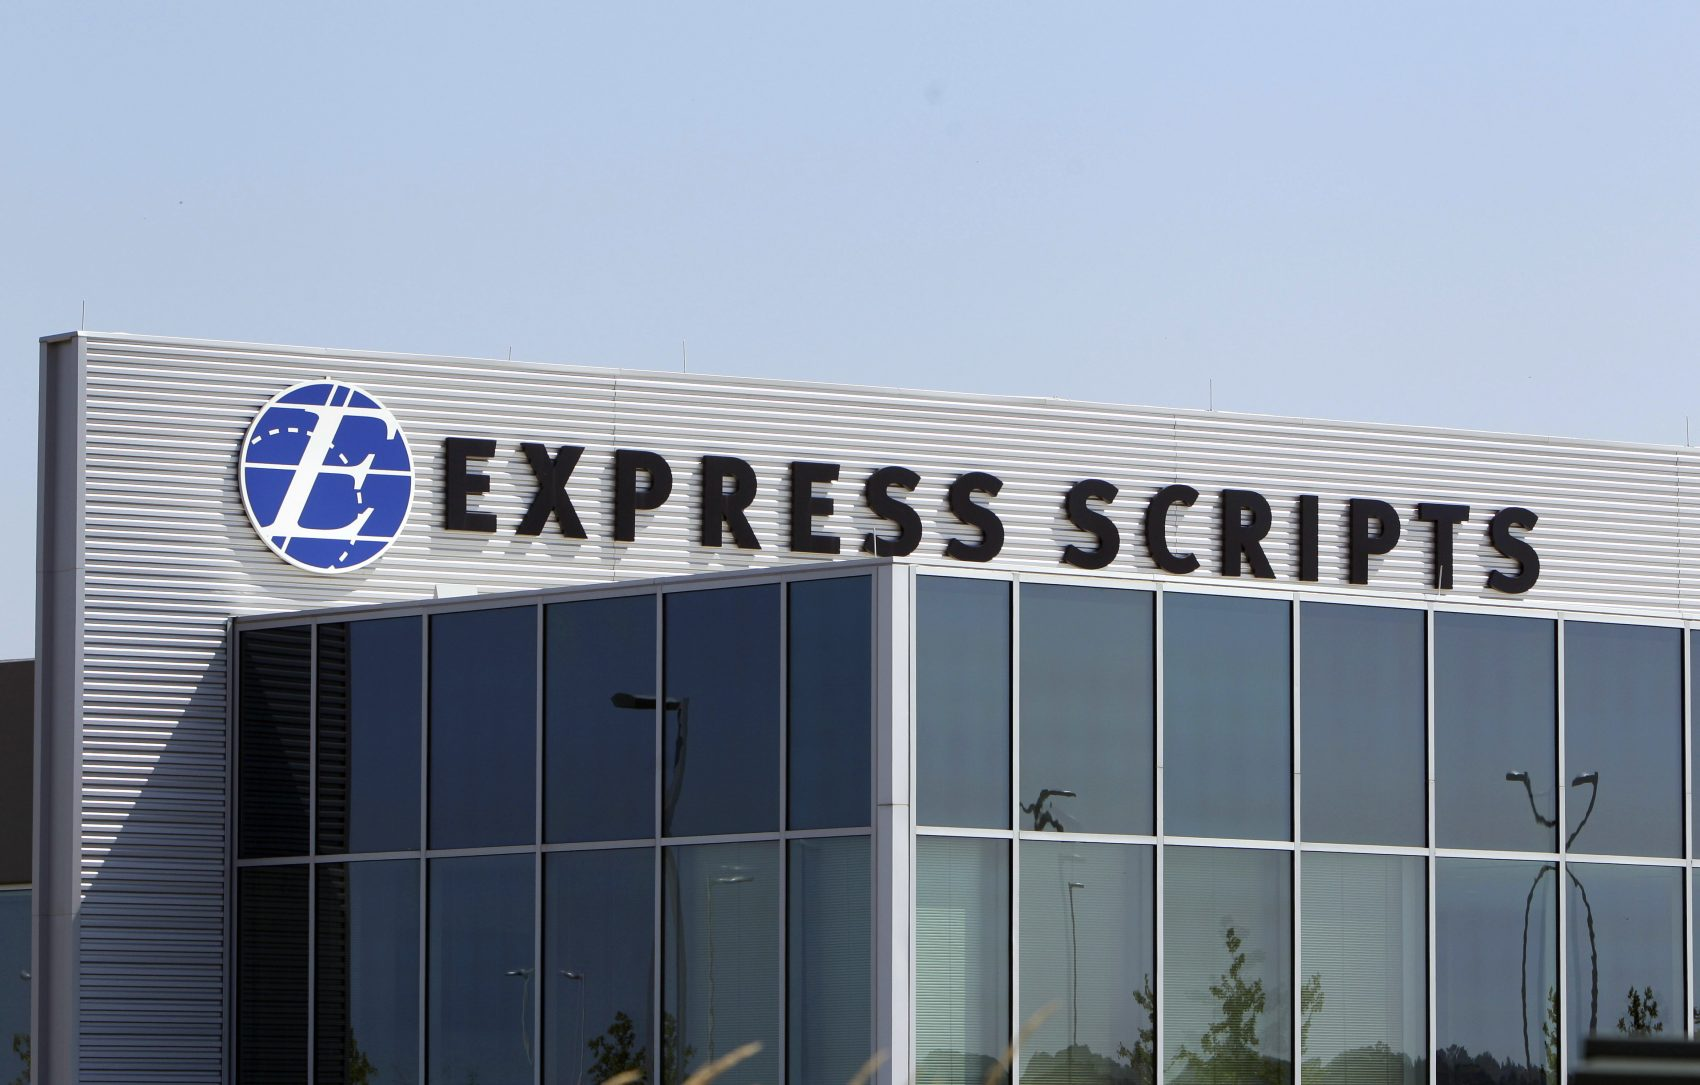 This July 21, 2011, file photo shows a building on the Express Scripts campus in Berkeley, Mo. (Jeff Roberson, File/AP)